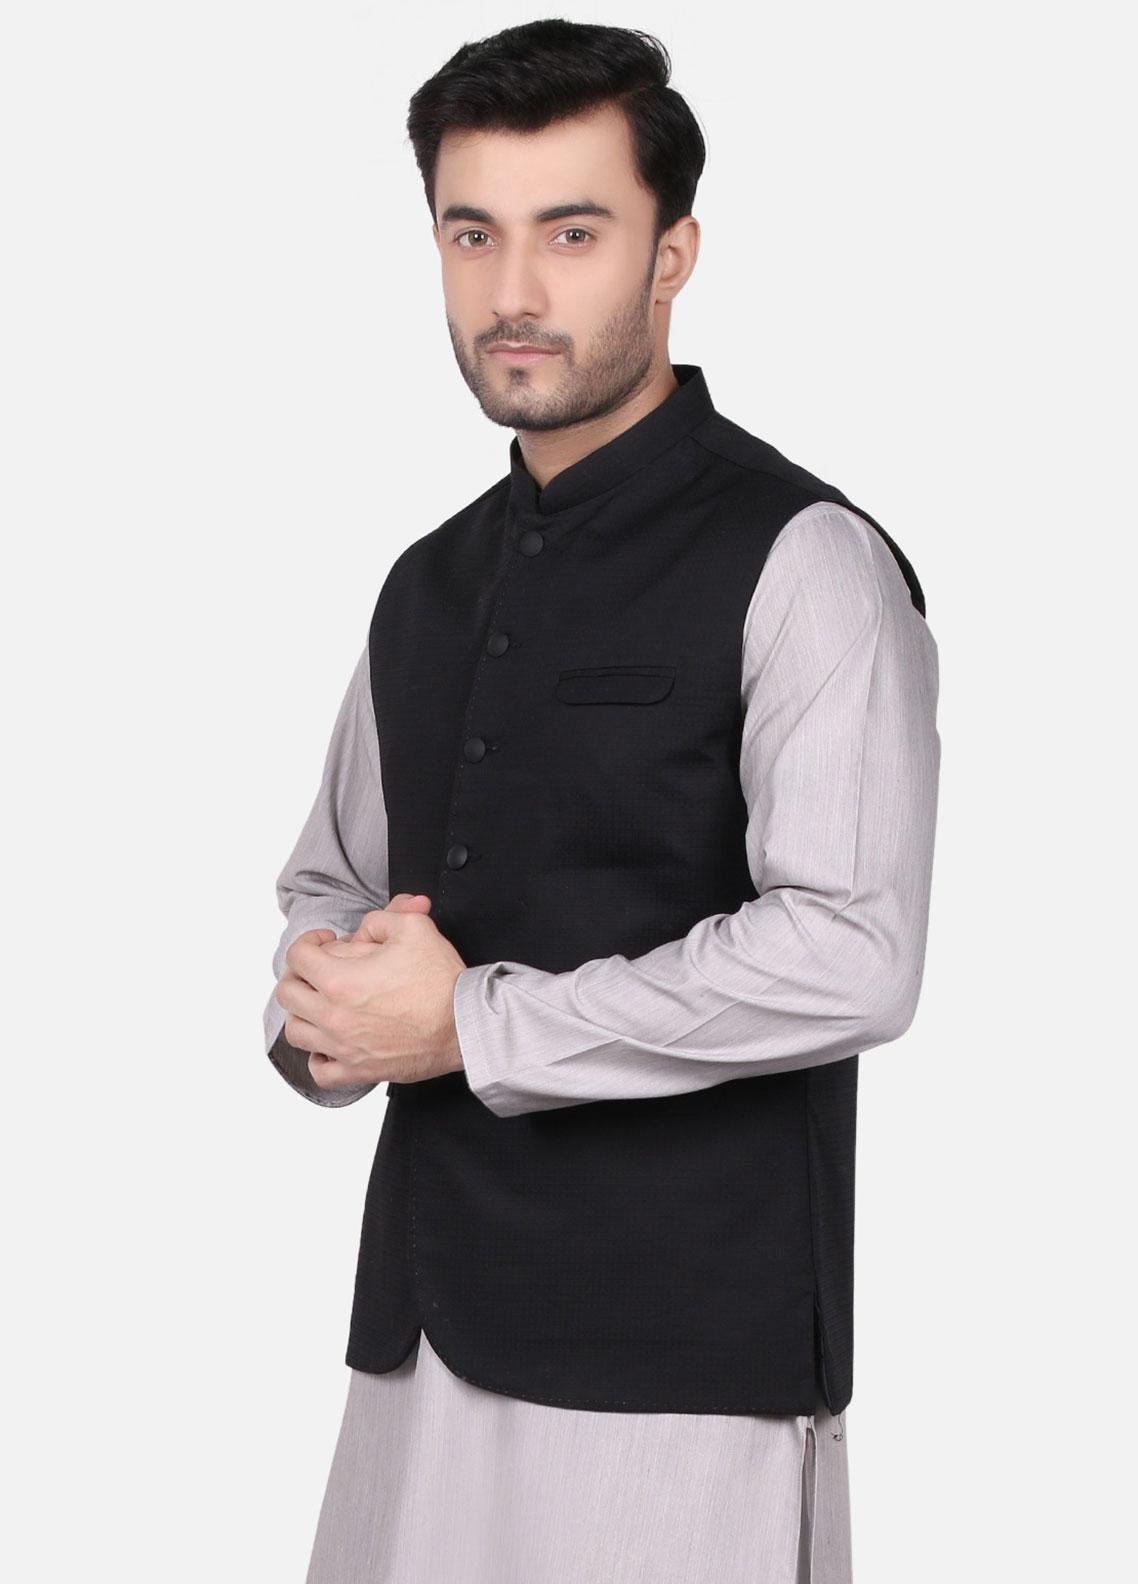 Edenrobe Jacquard Formal Men Waistcoats - Black EMTWC19-35667